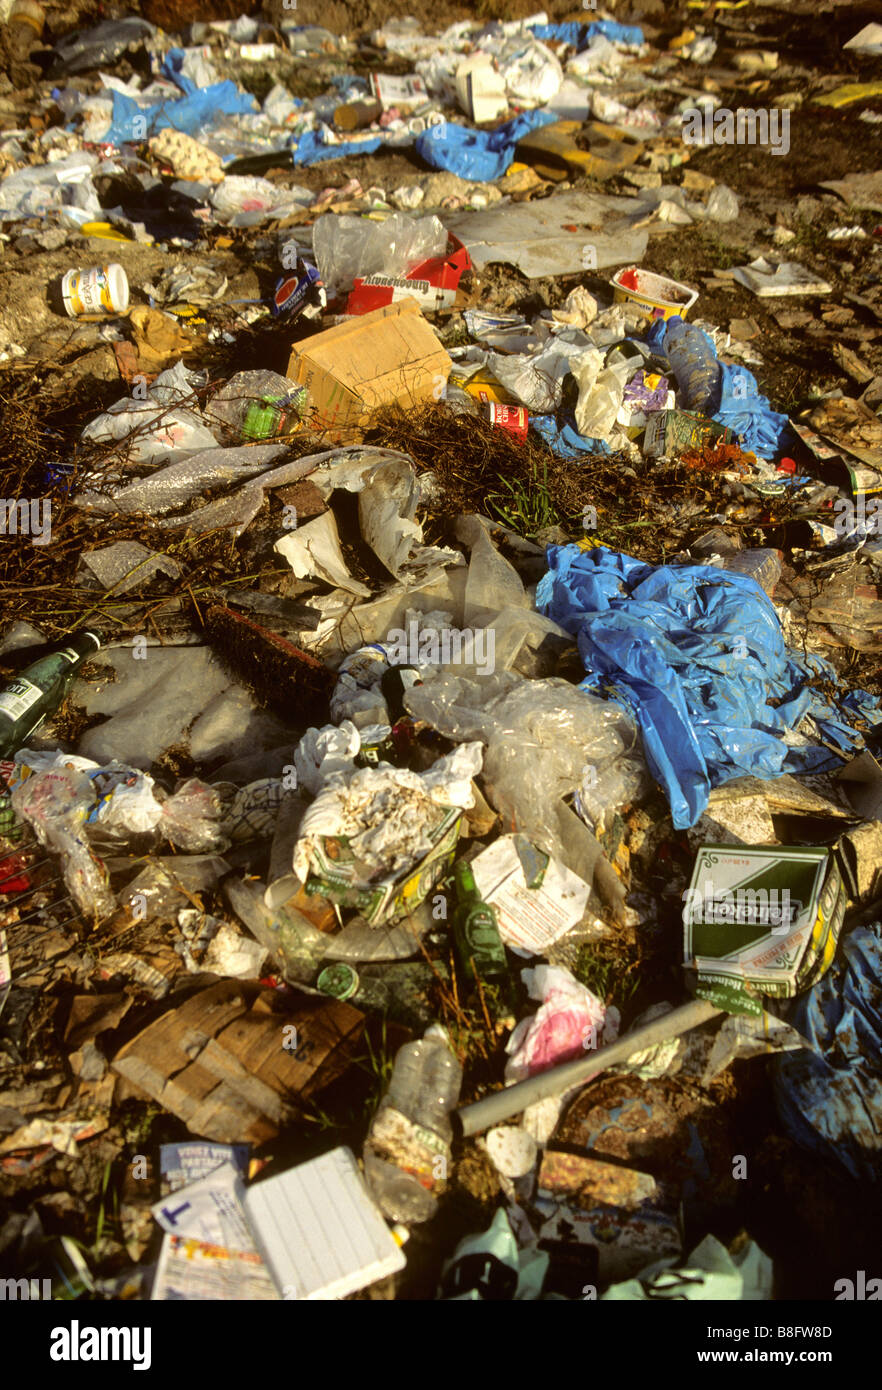 Waste at a landfill site, rubbish tip - Stock Image